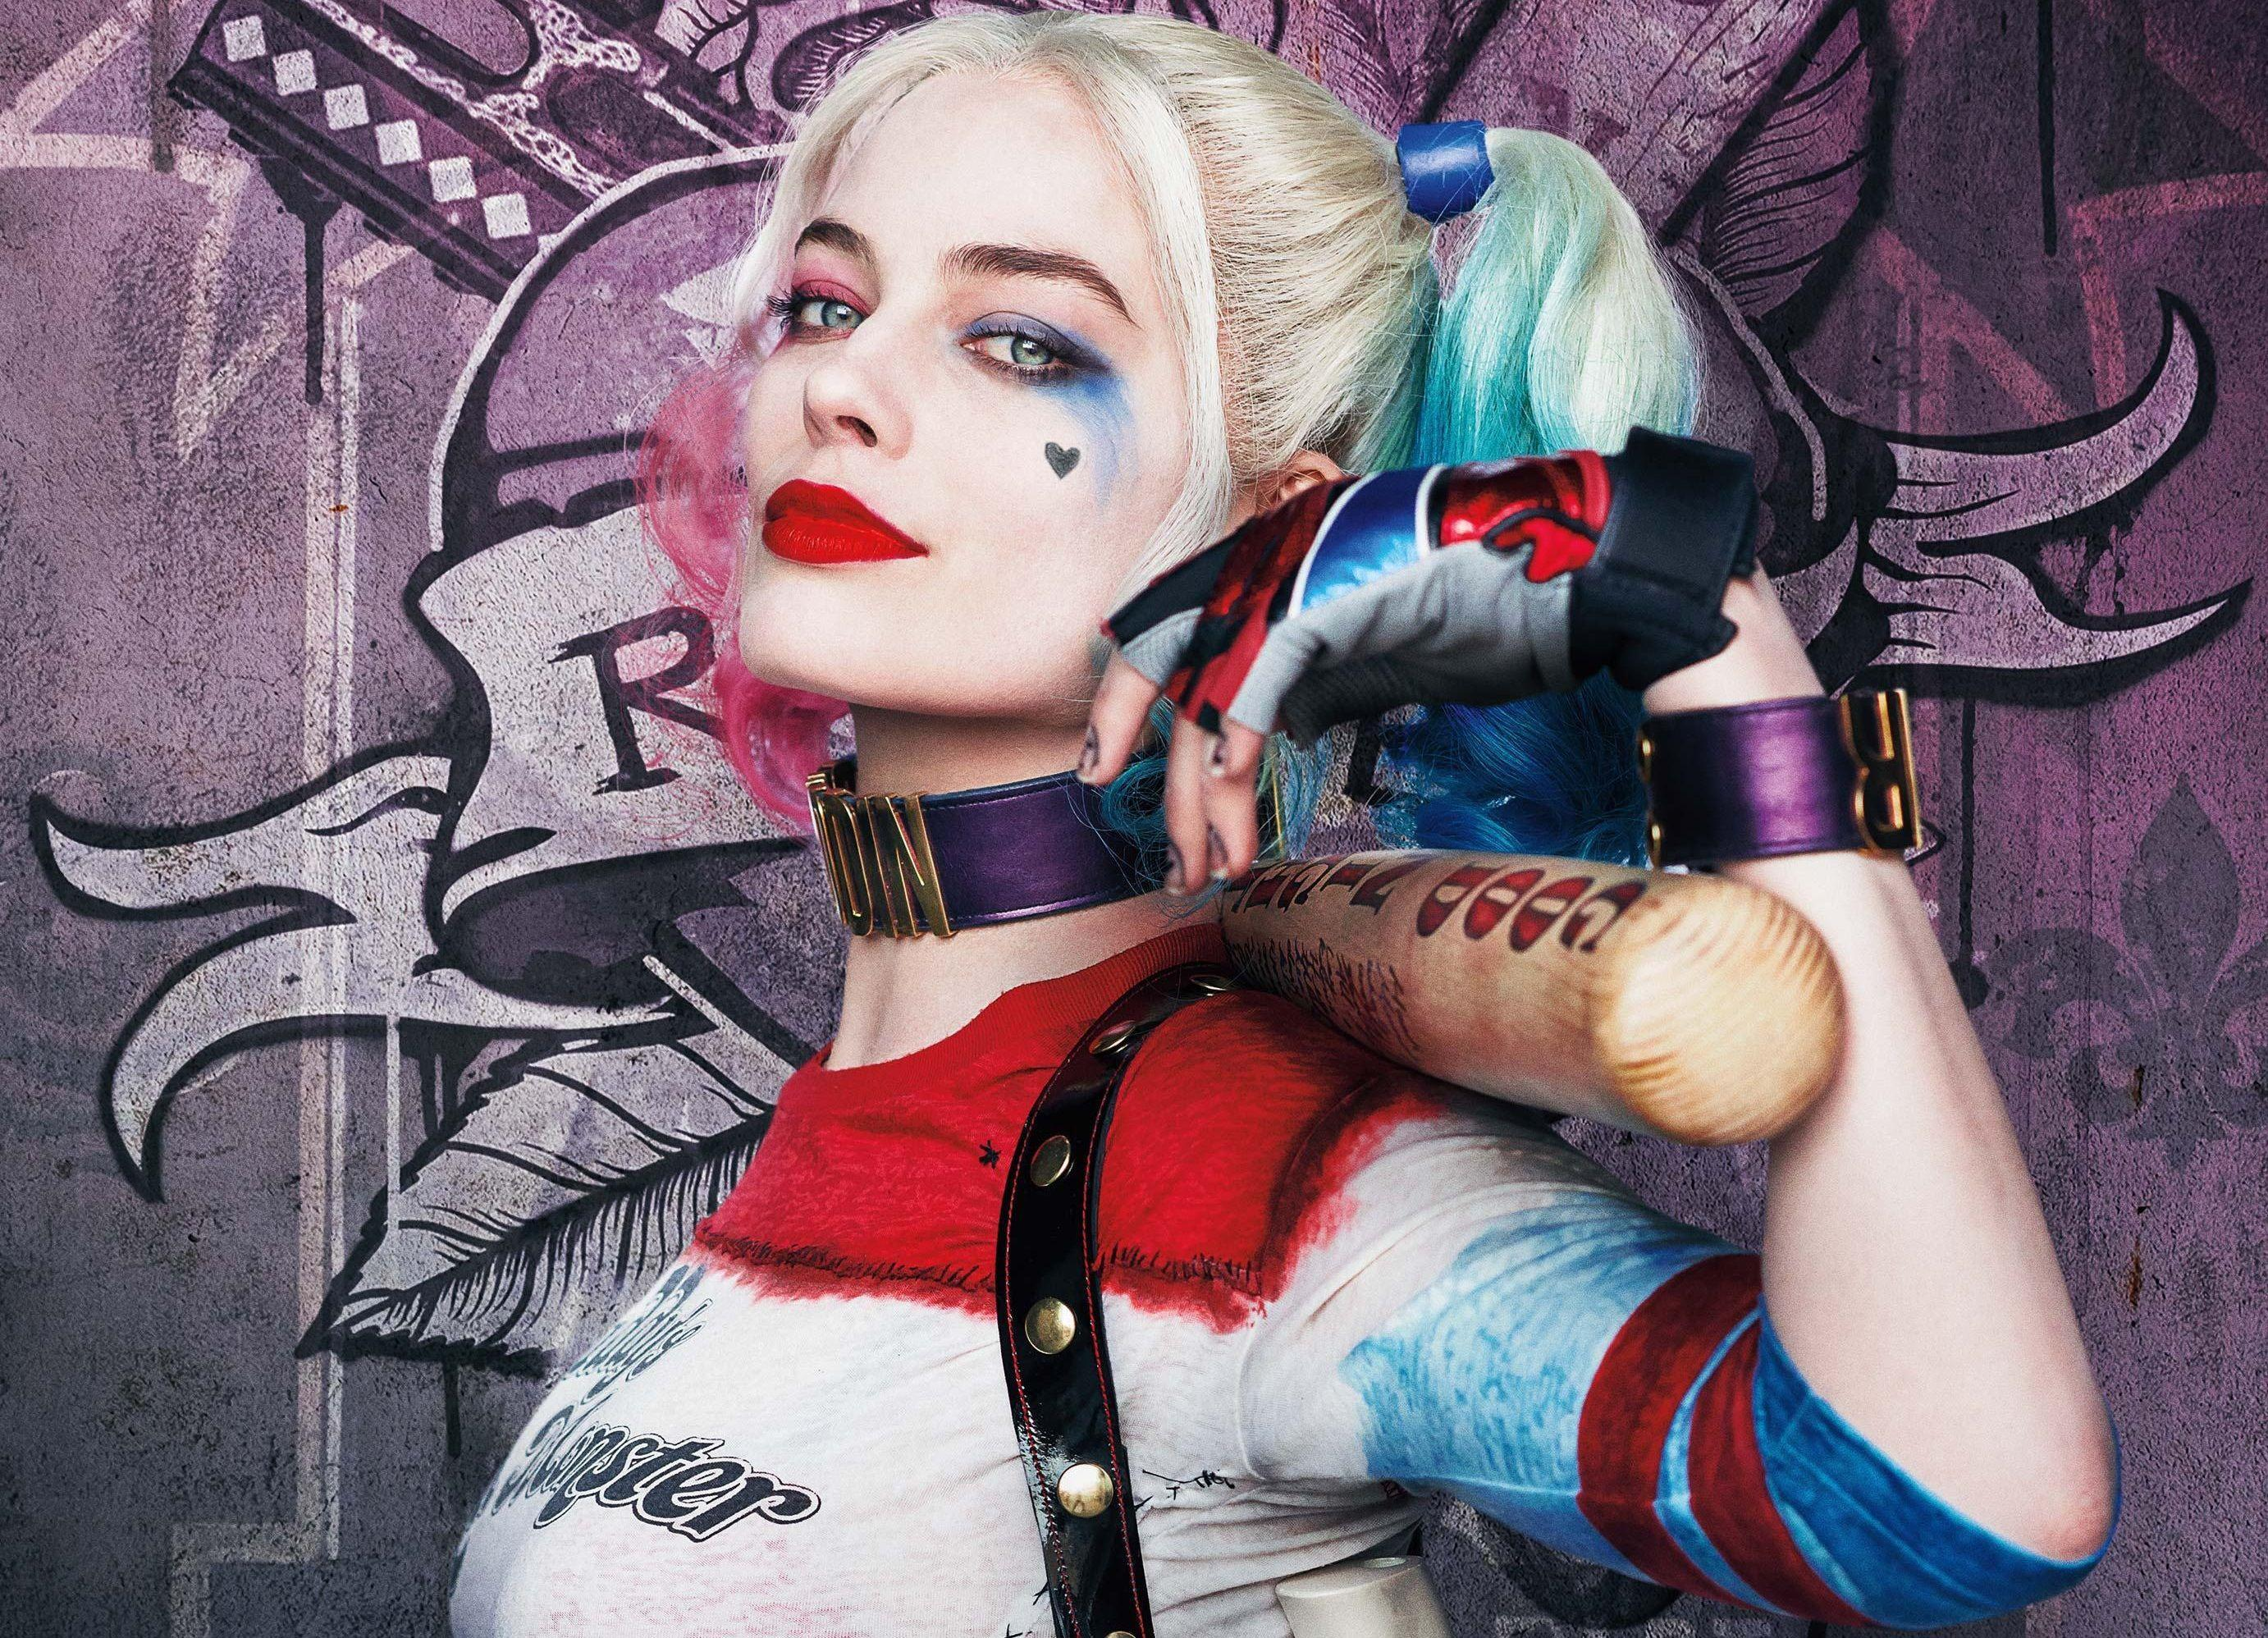 harley quinn suicide squad wallpapers - wallpaper cave